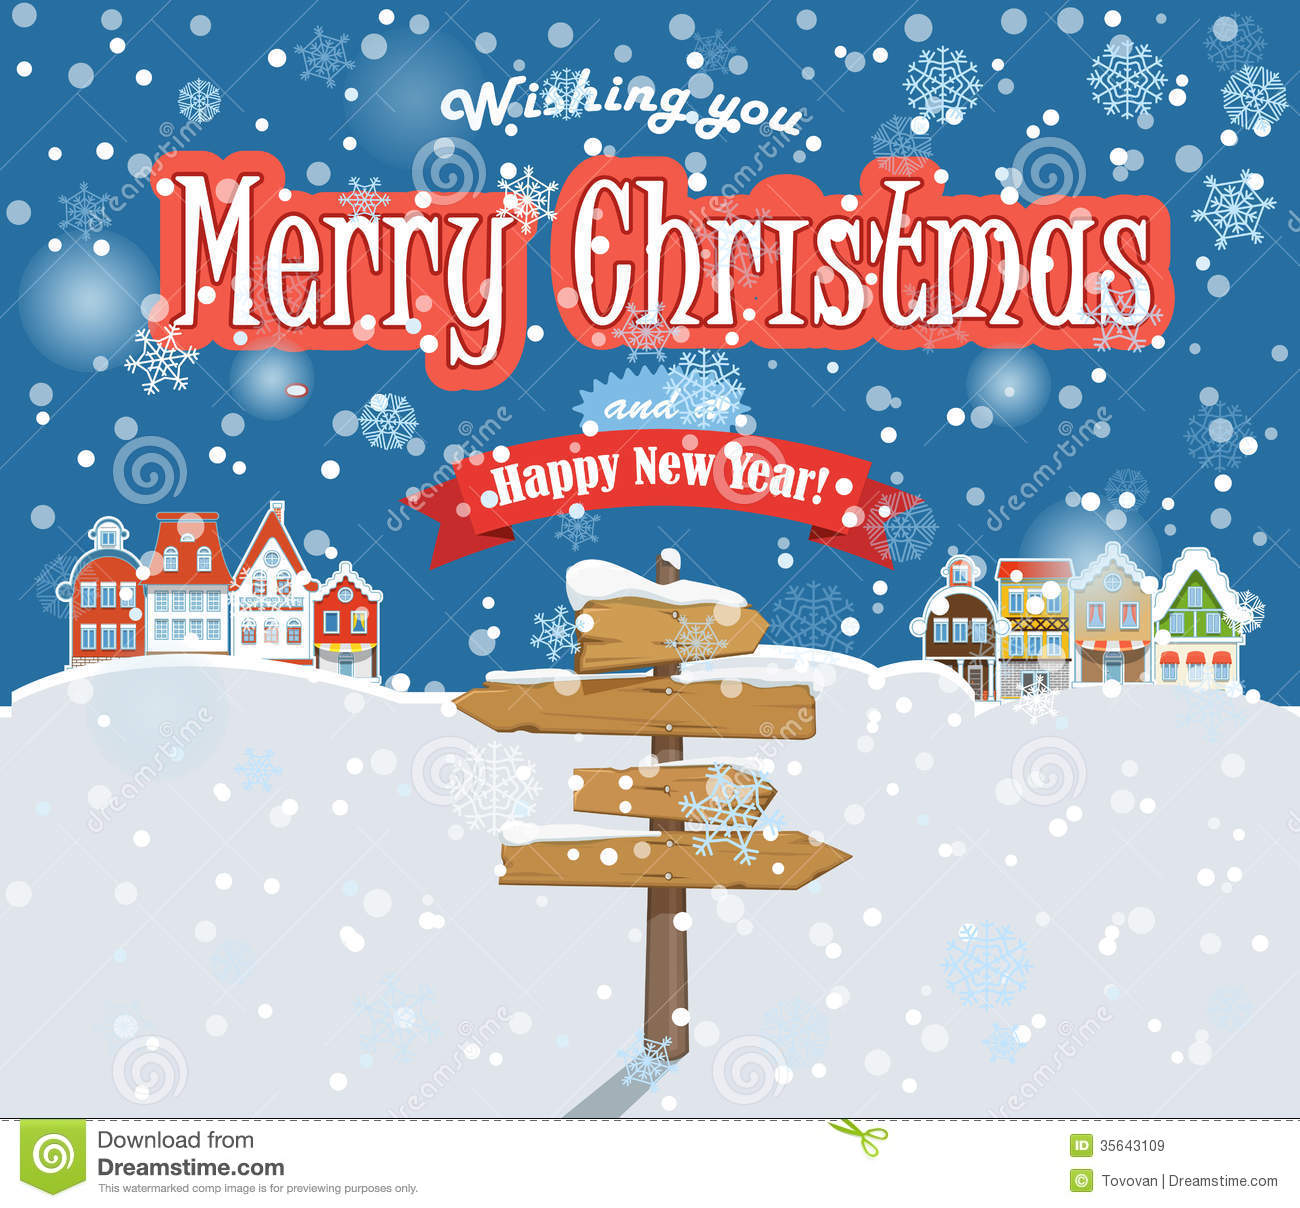 Free Merry Christmas Images.Merry Christmas And Happy New Year Stock Vector